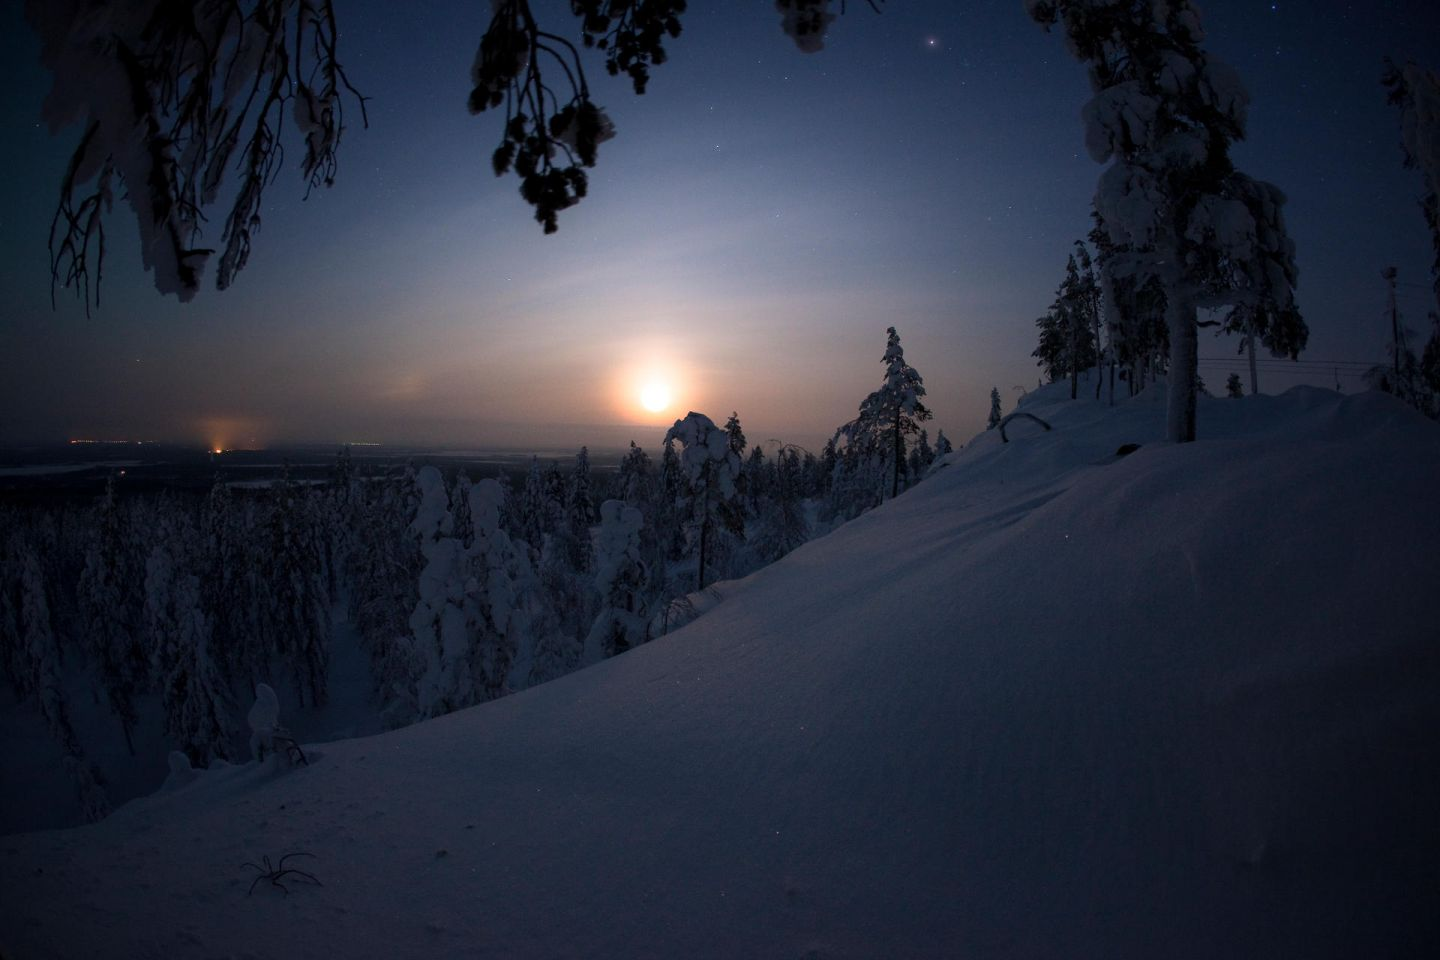 Sun rising over a dark snowy forest hill in the Arctic